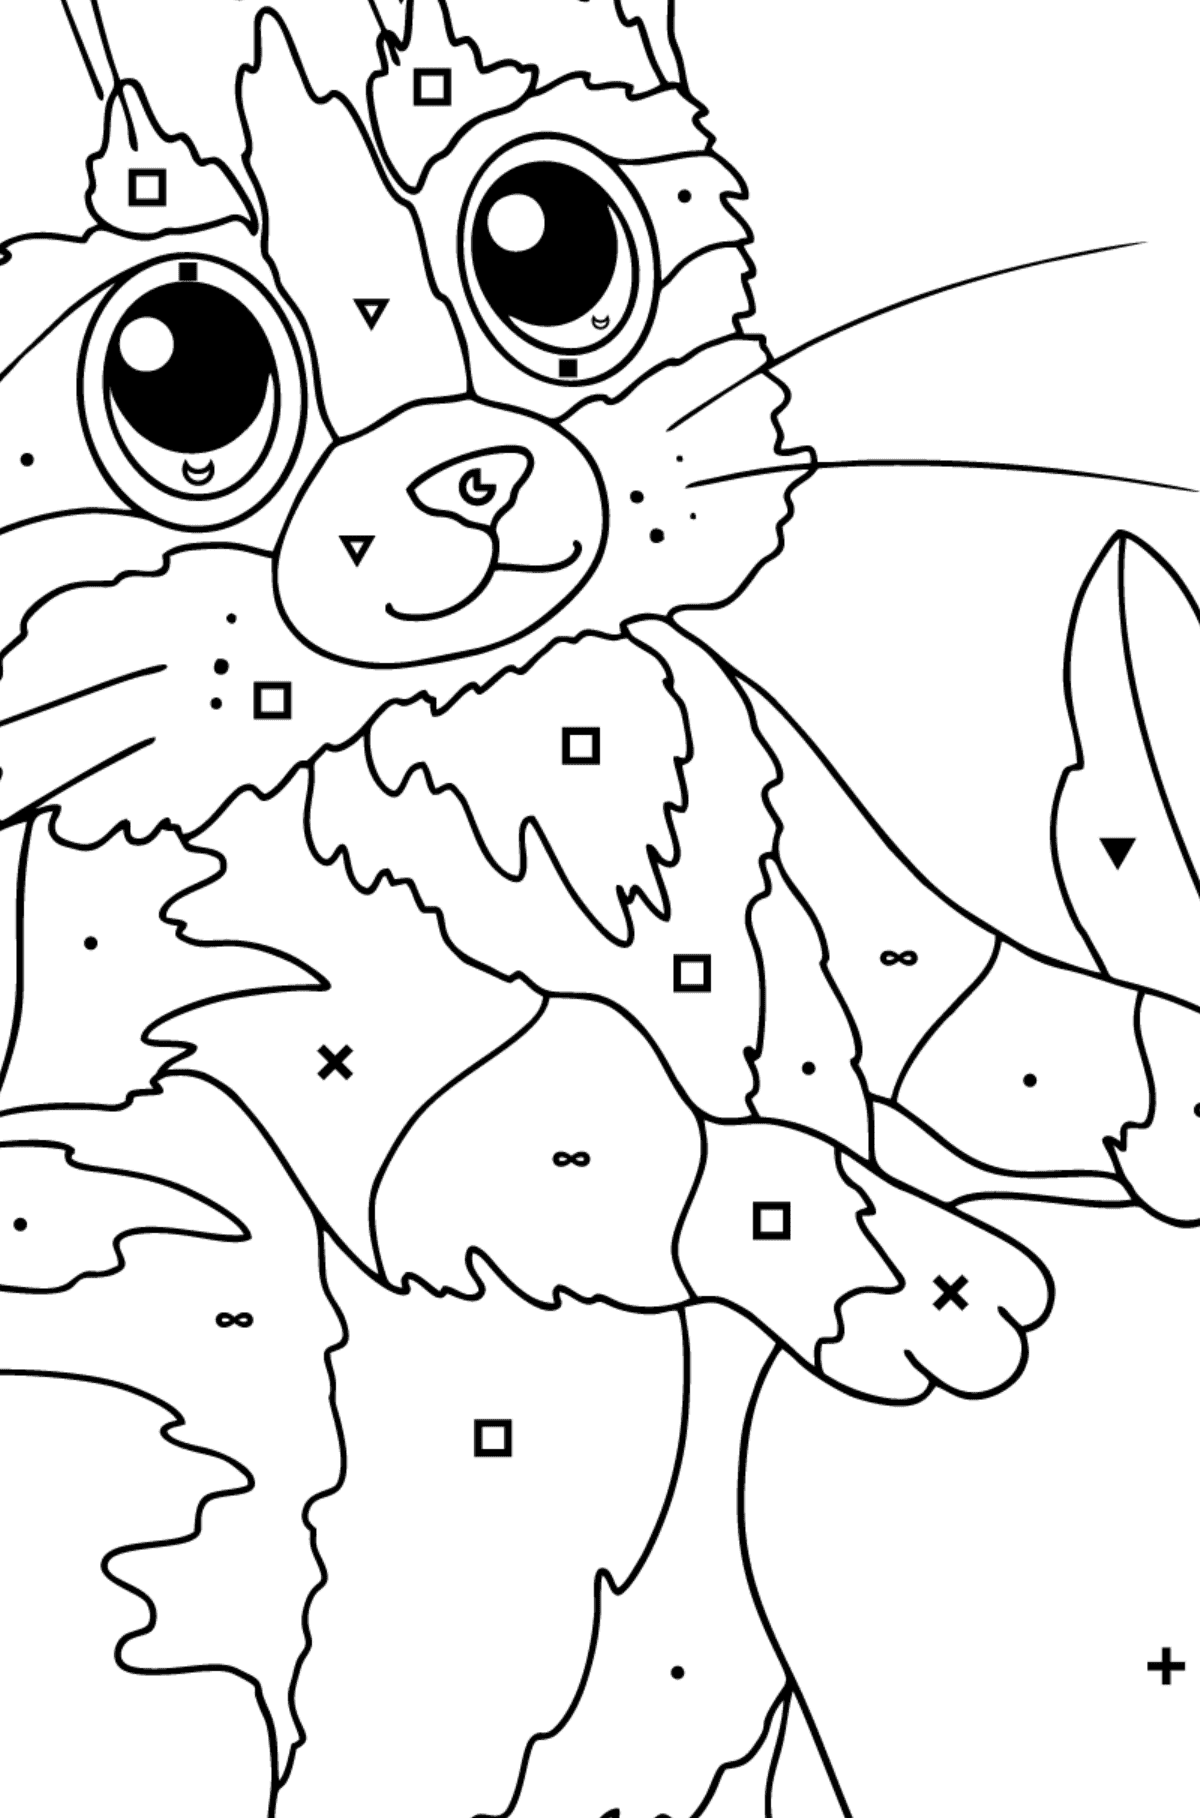 Coloring Page - A Cat and a Ripe Apple - Coloring by Symbols and Geometric Shapes for Kids